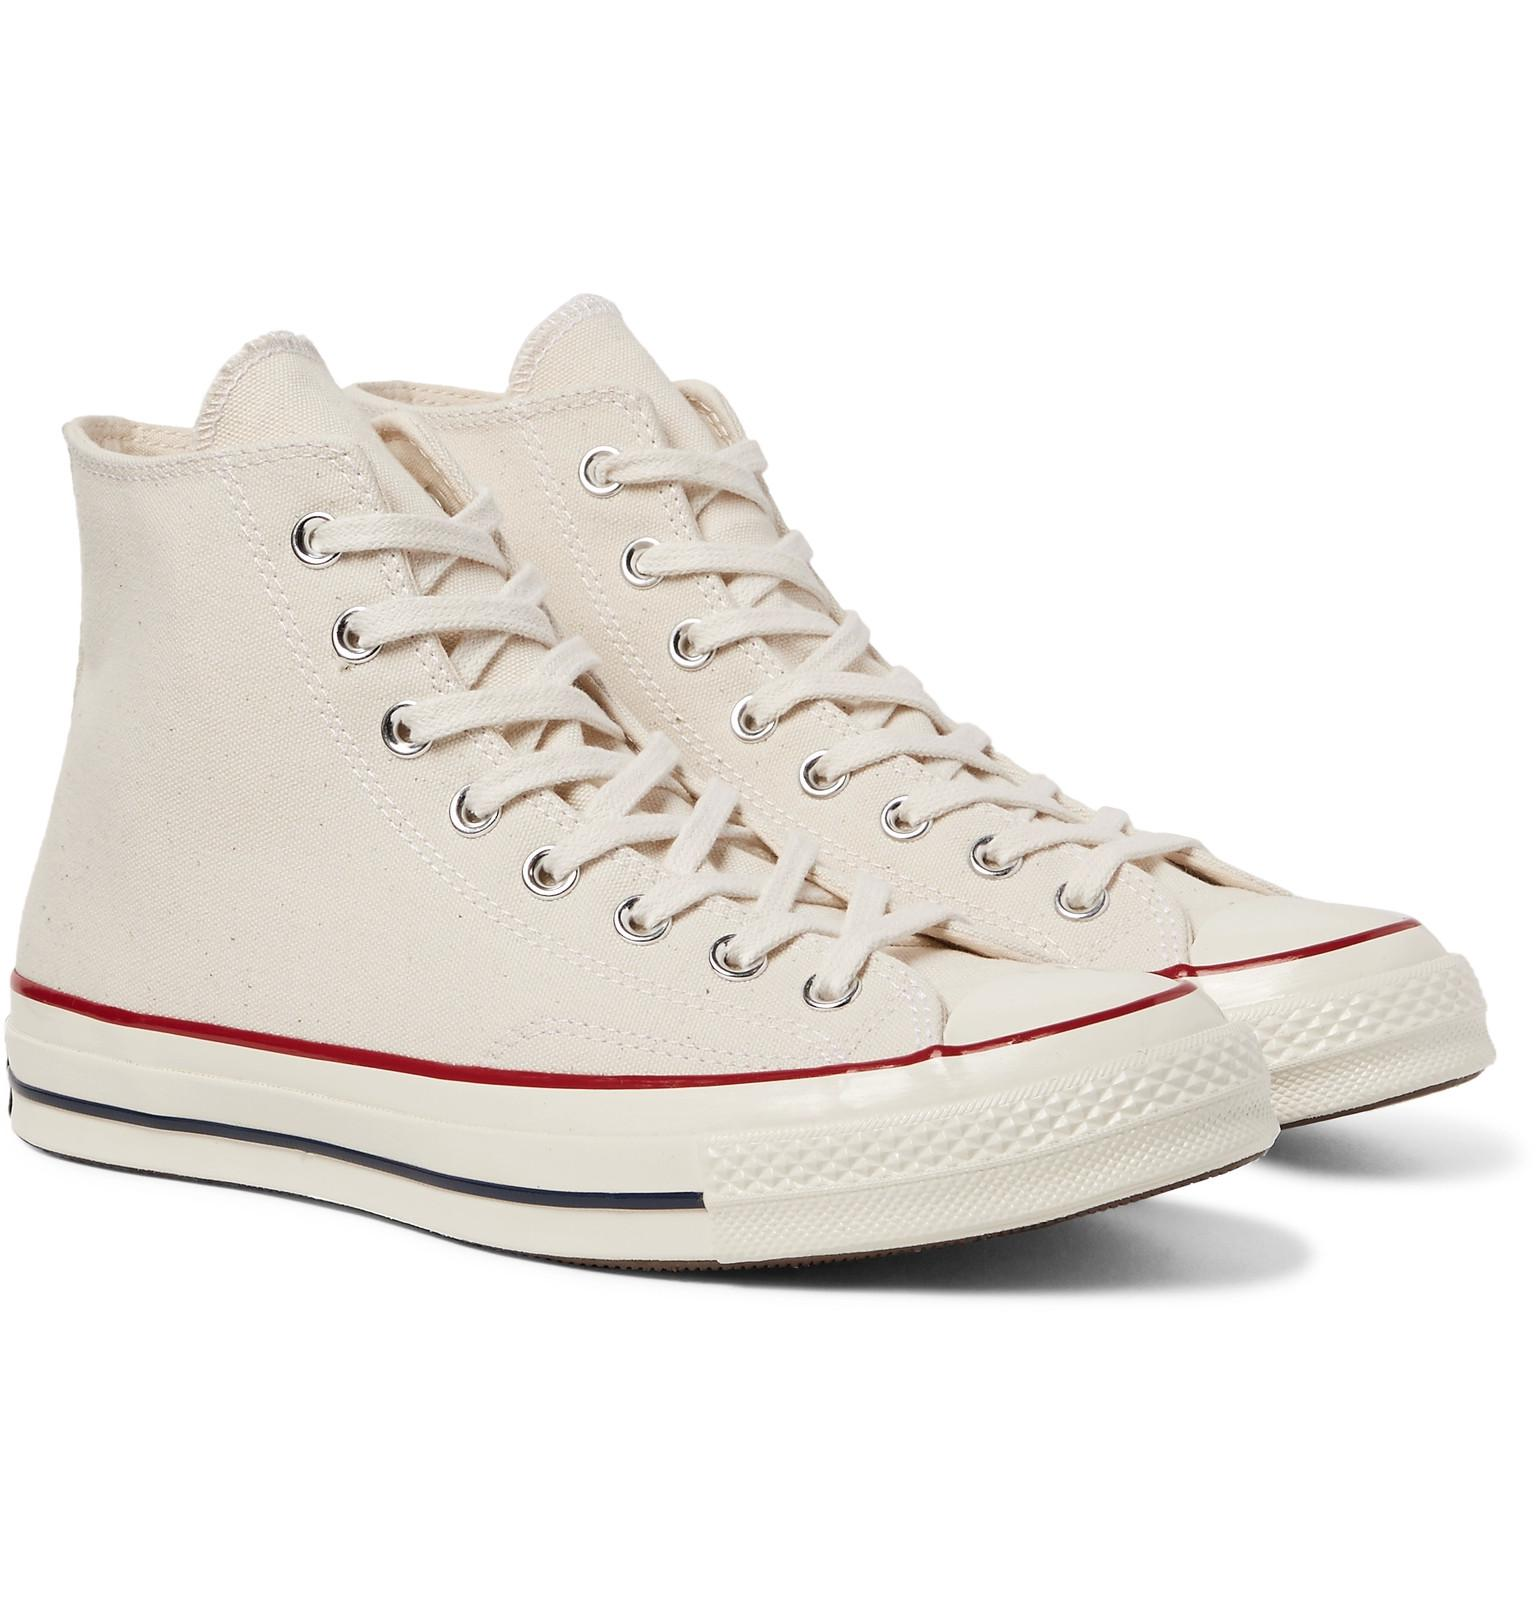 + Dr Woo 1970s Chuck Taylor All Star Embroidered Canvas High-top Sneakers - Off-whiteConverse zoi8Ux